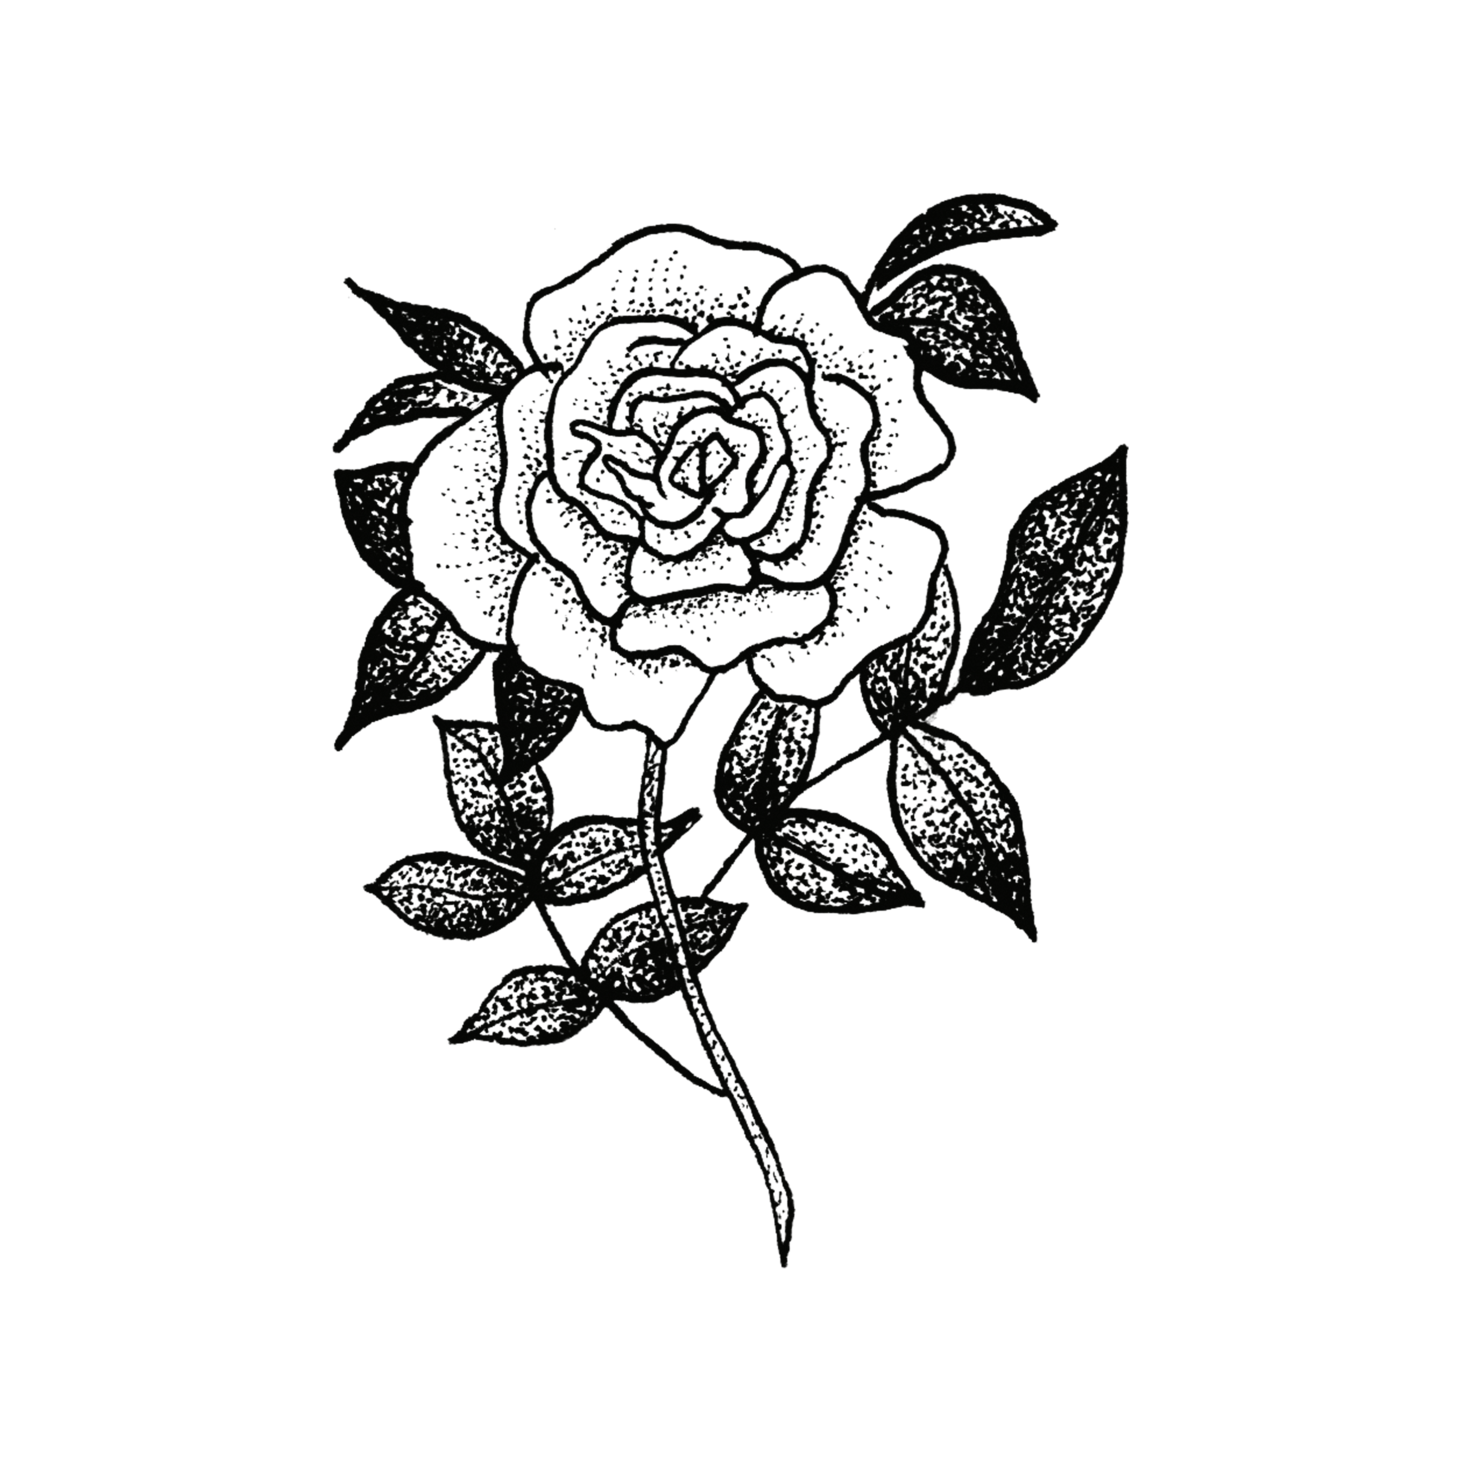 Rose by Tea Leigh from Tattly Temporary Tattoos - Black and White Rose Design